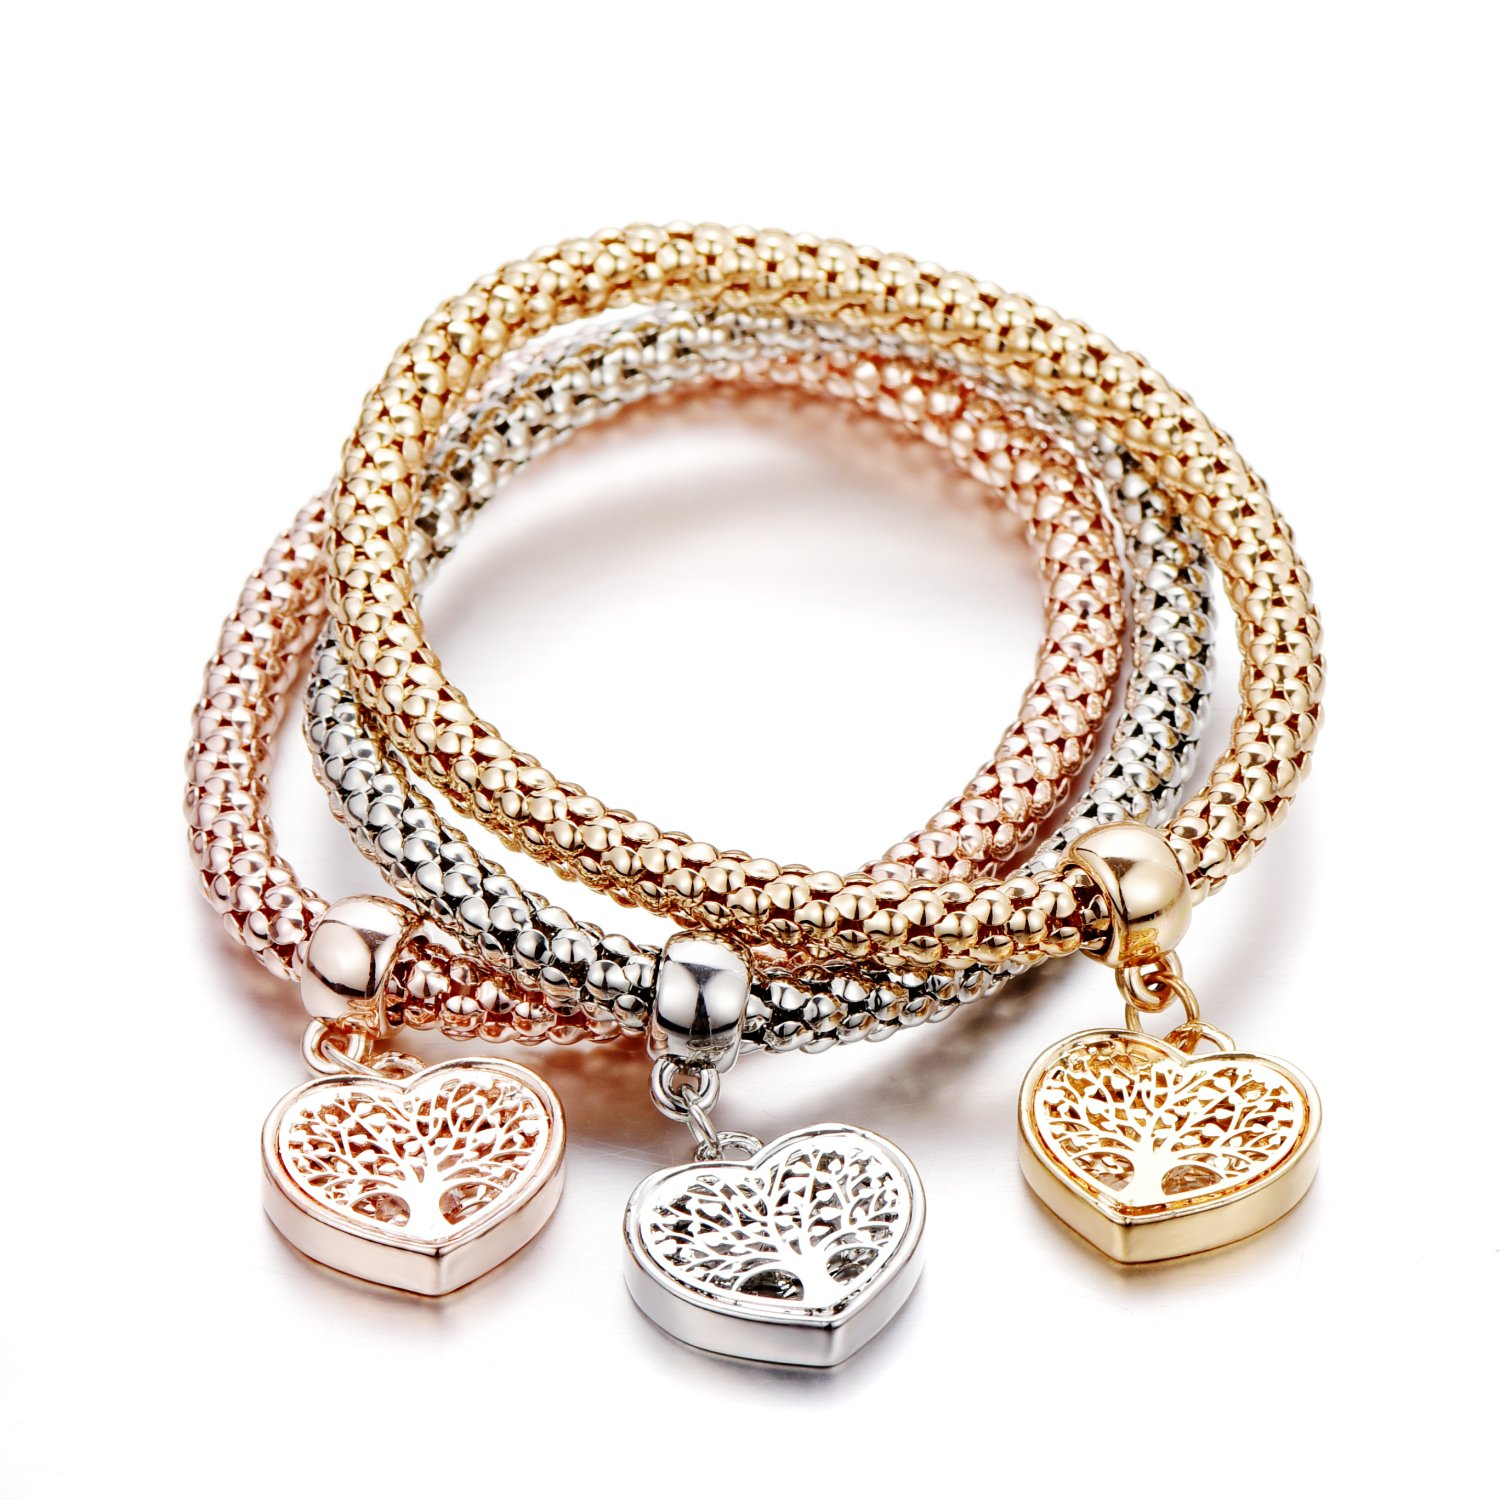 SILANER Stretch Bracelets 3pcs Tree of Life Heart Edition Charm Bracelet with crystals for Women B07F1MKPT2_US